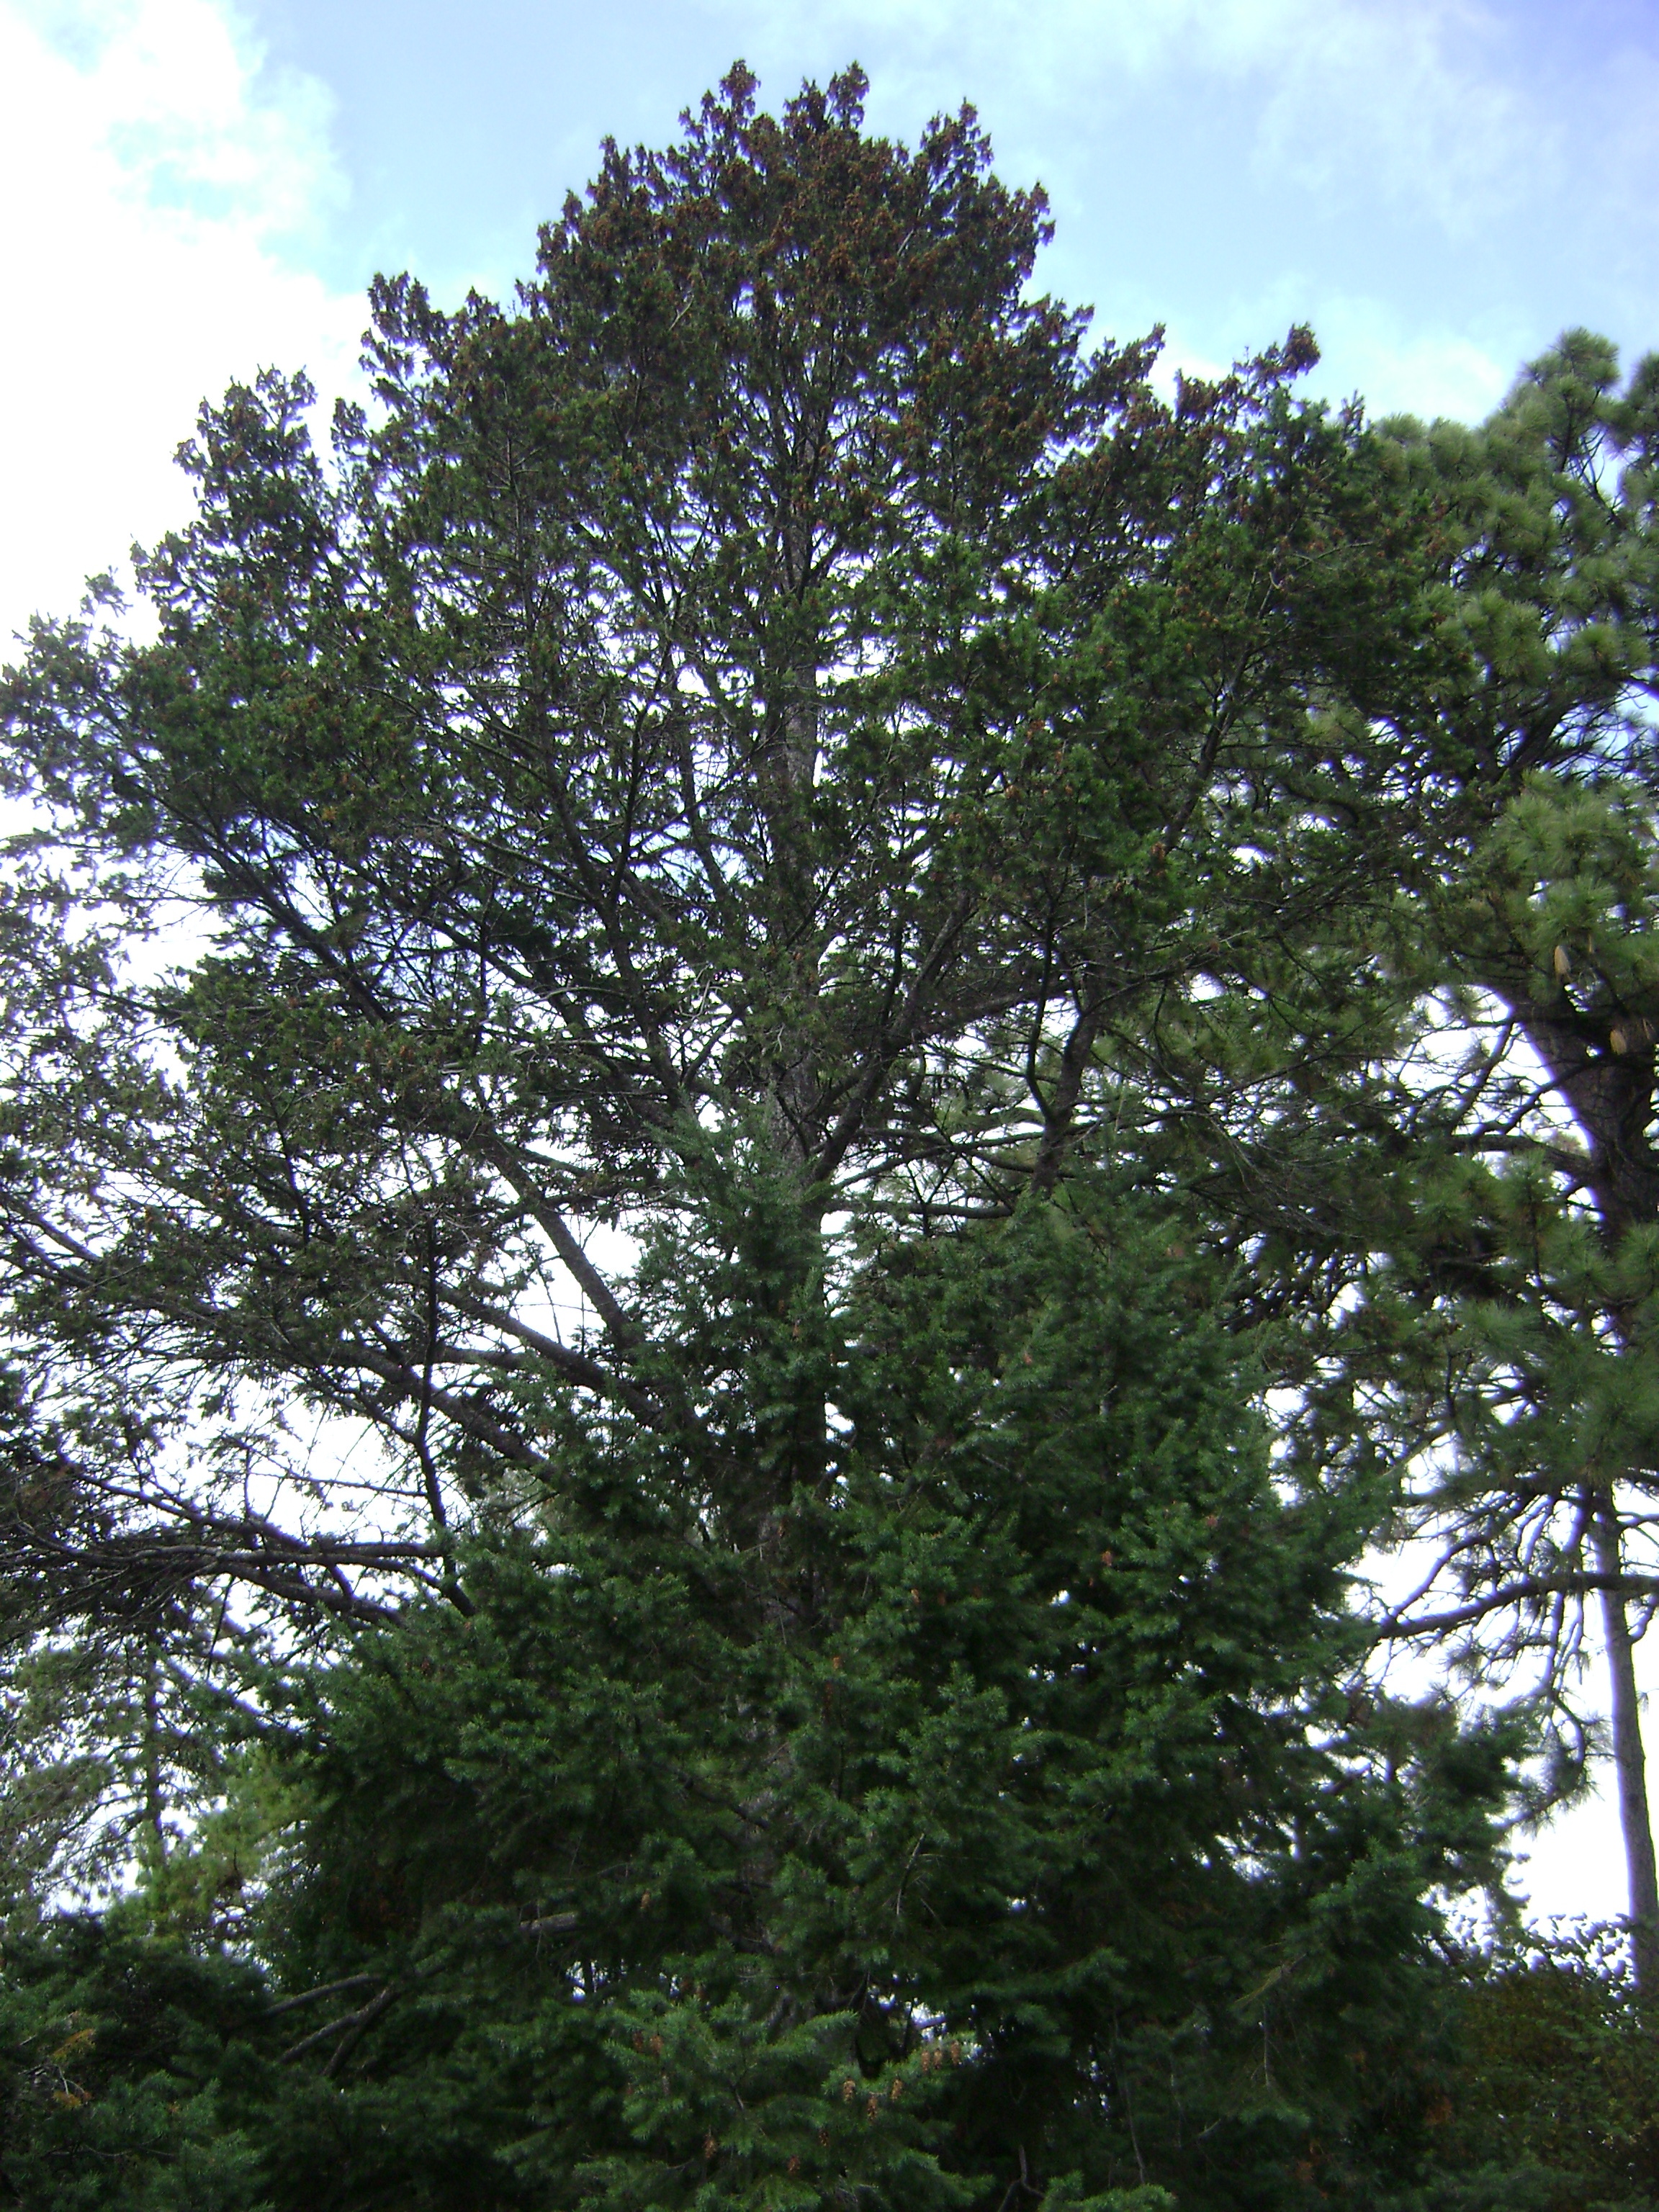 Photograph of a douglas fir tree.